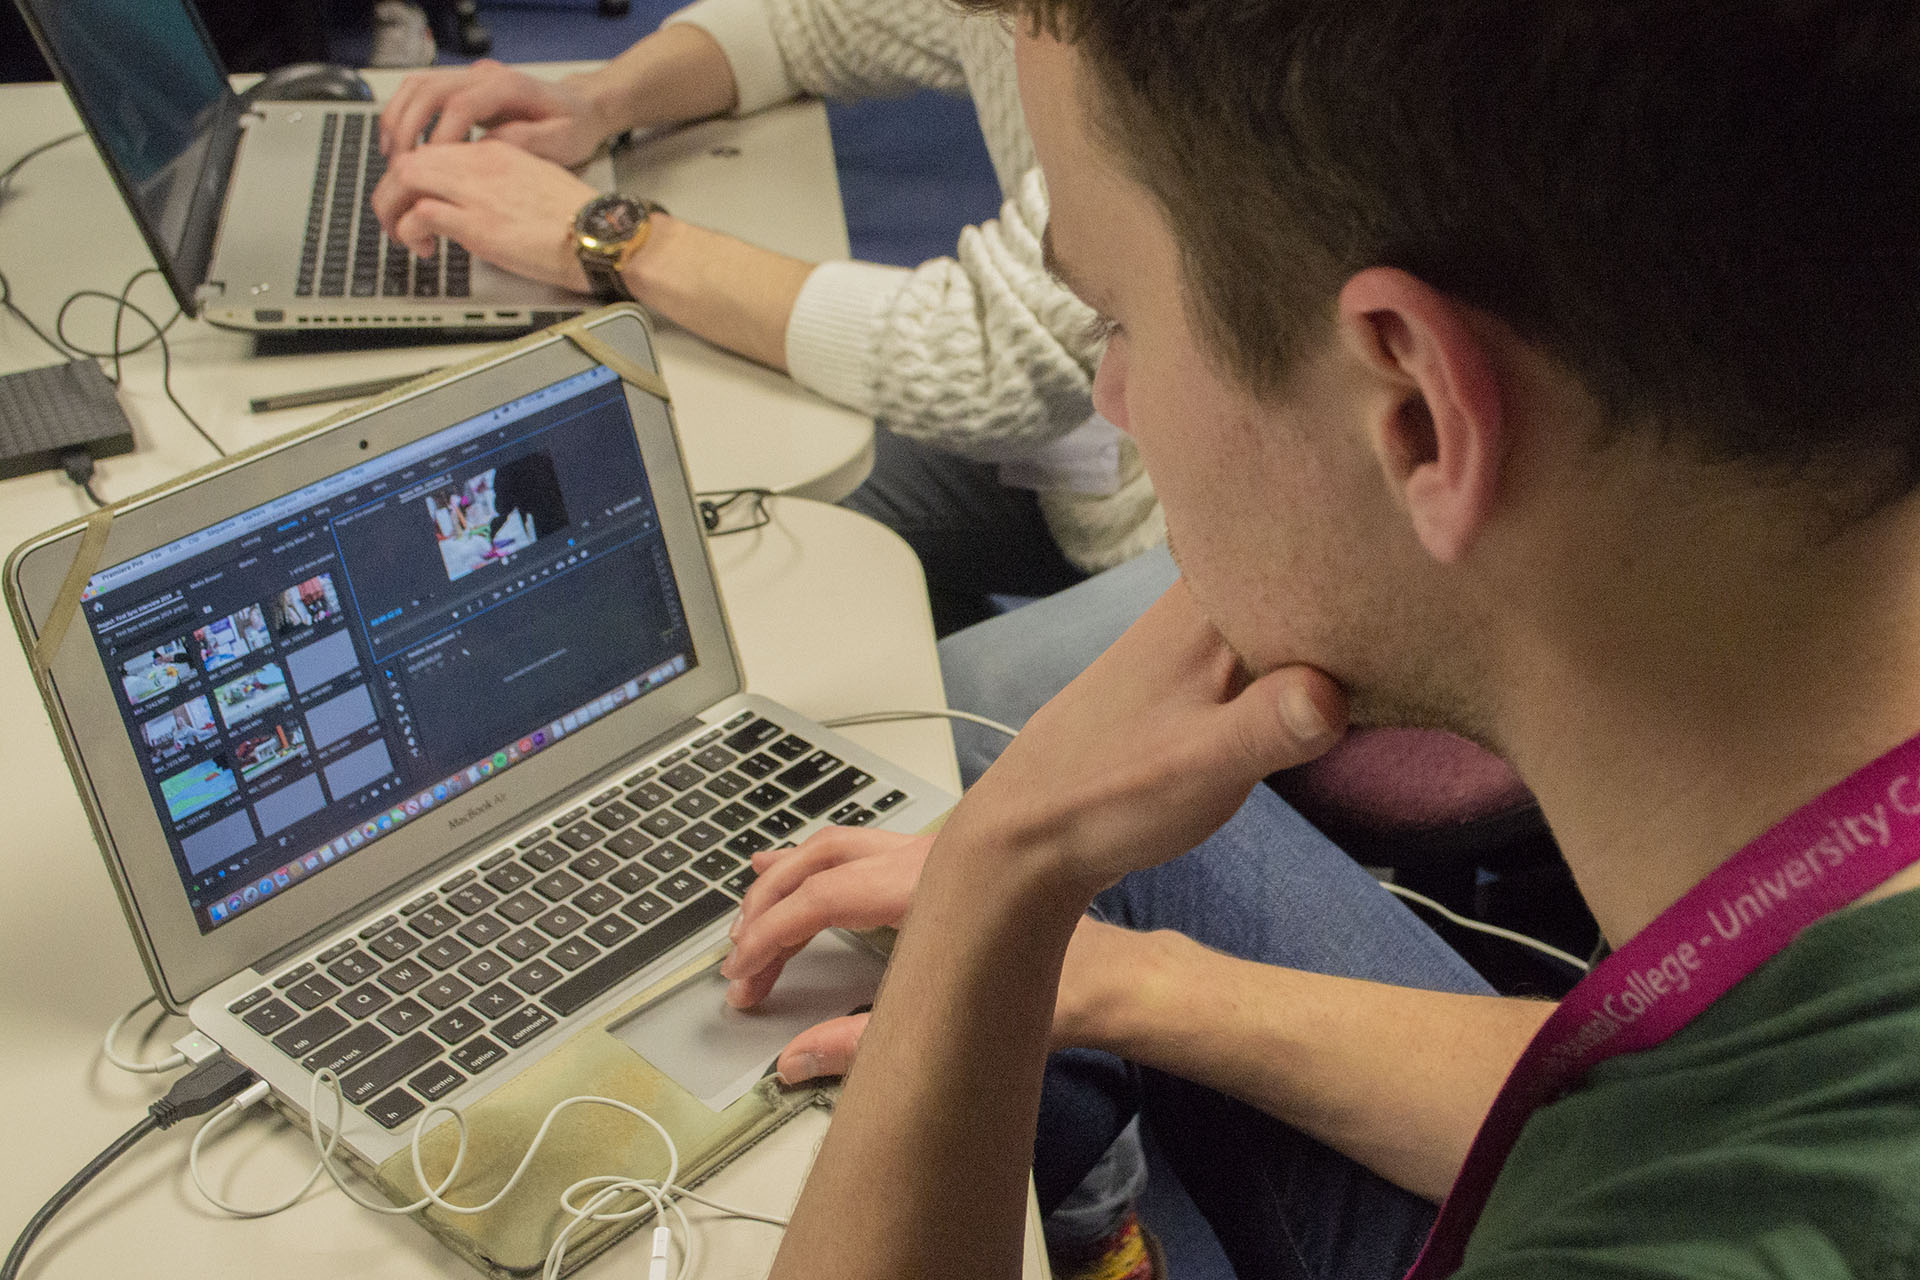 Student editing film on computer